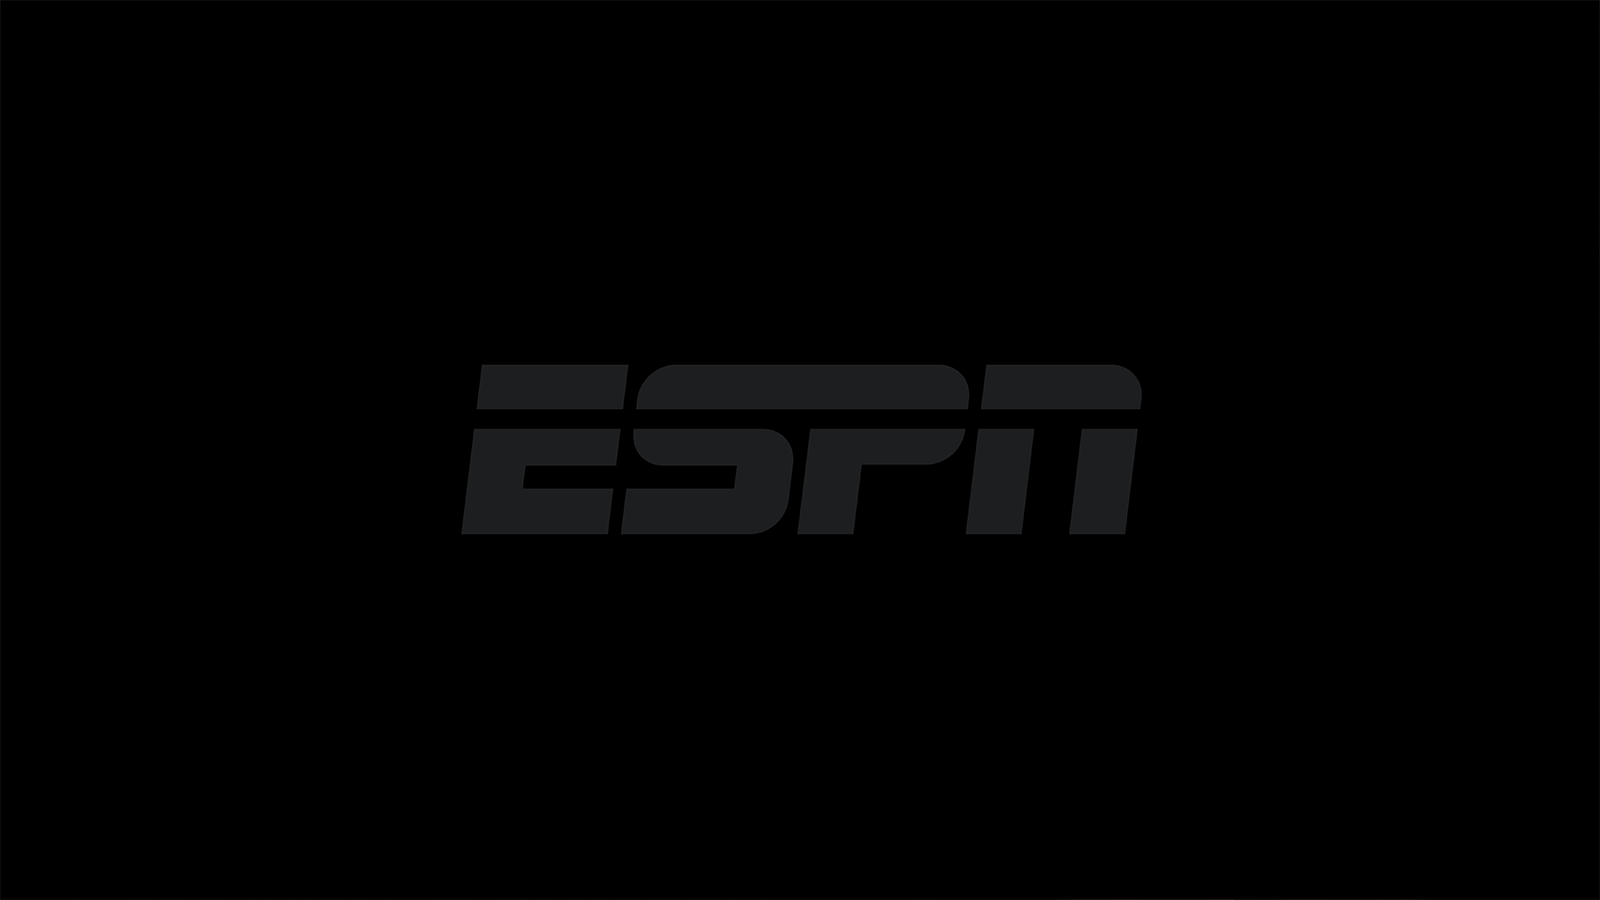 schedule: live, upcoming, replays - watchespn